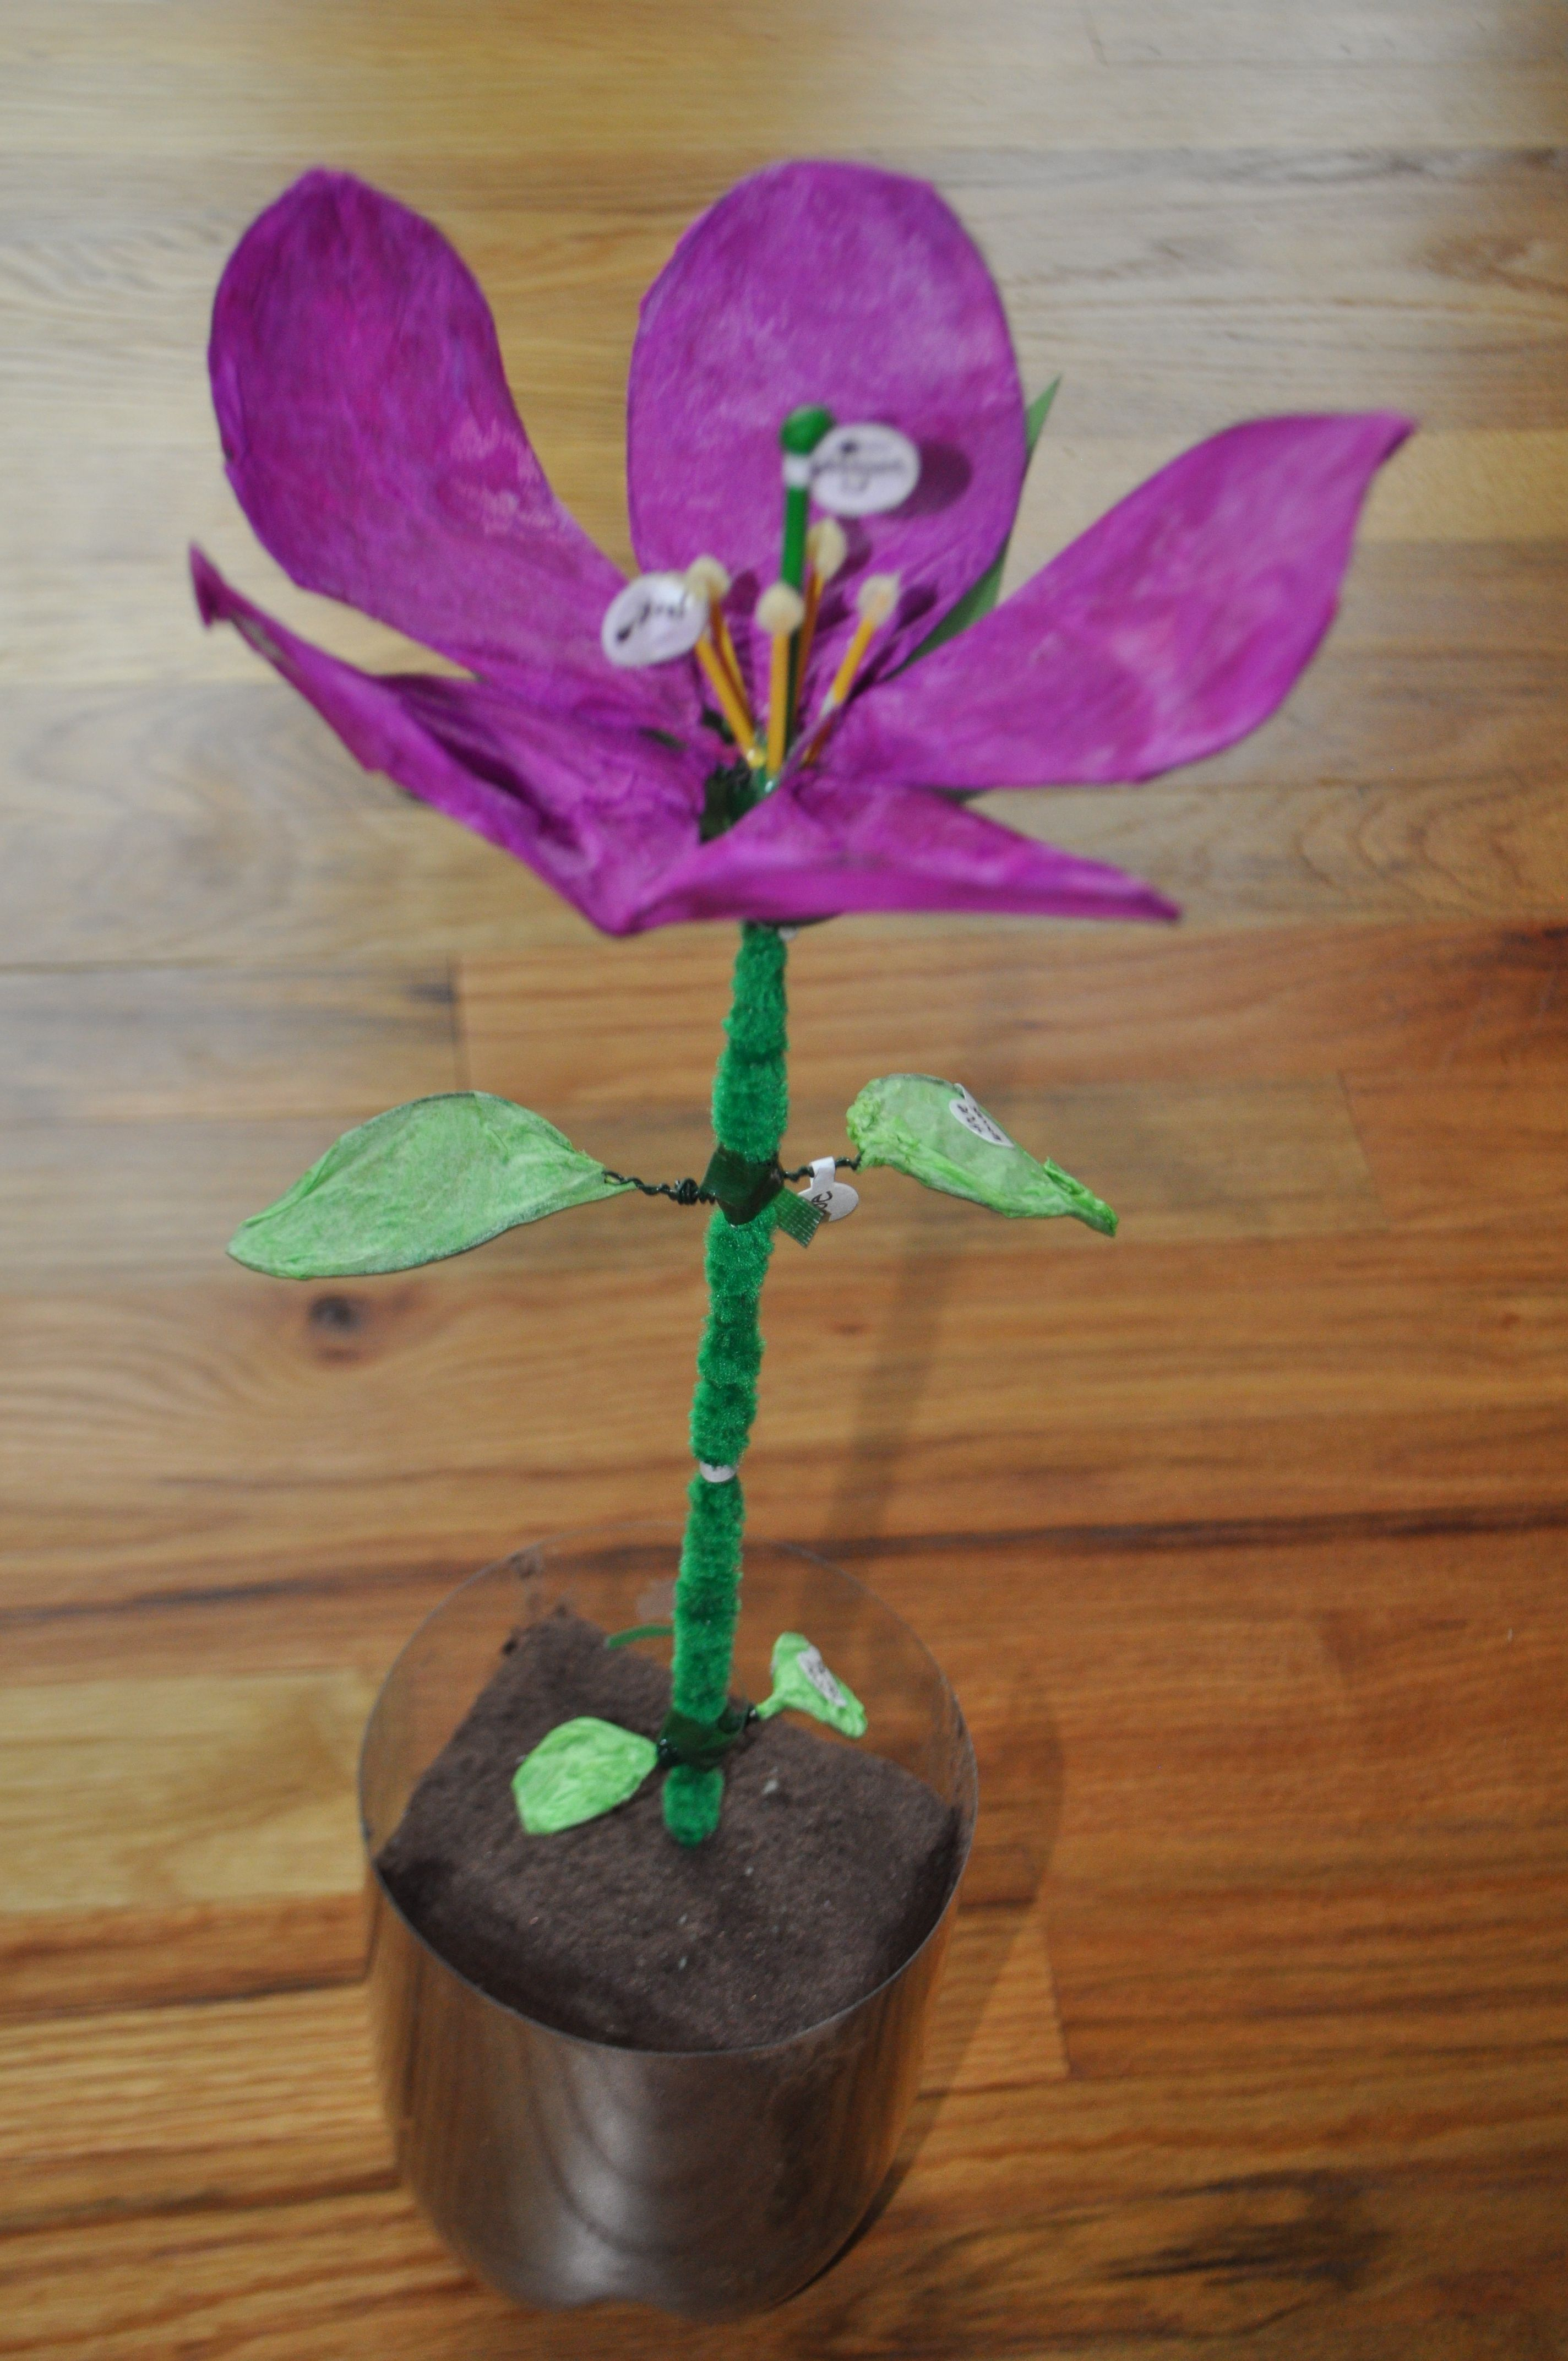 Stem On Pinterest Science Projects Fair And Stems My Daughters Creativity Here A Project 3d Model Of Plant